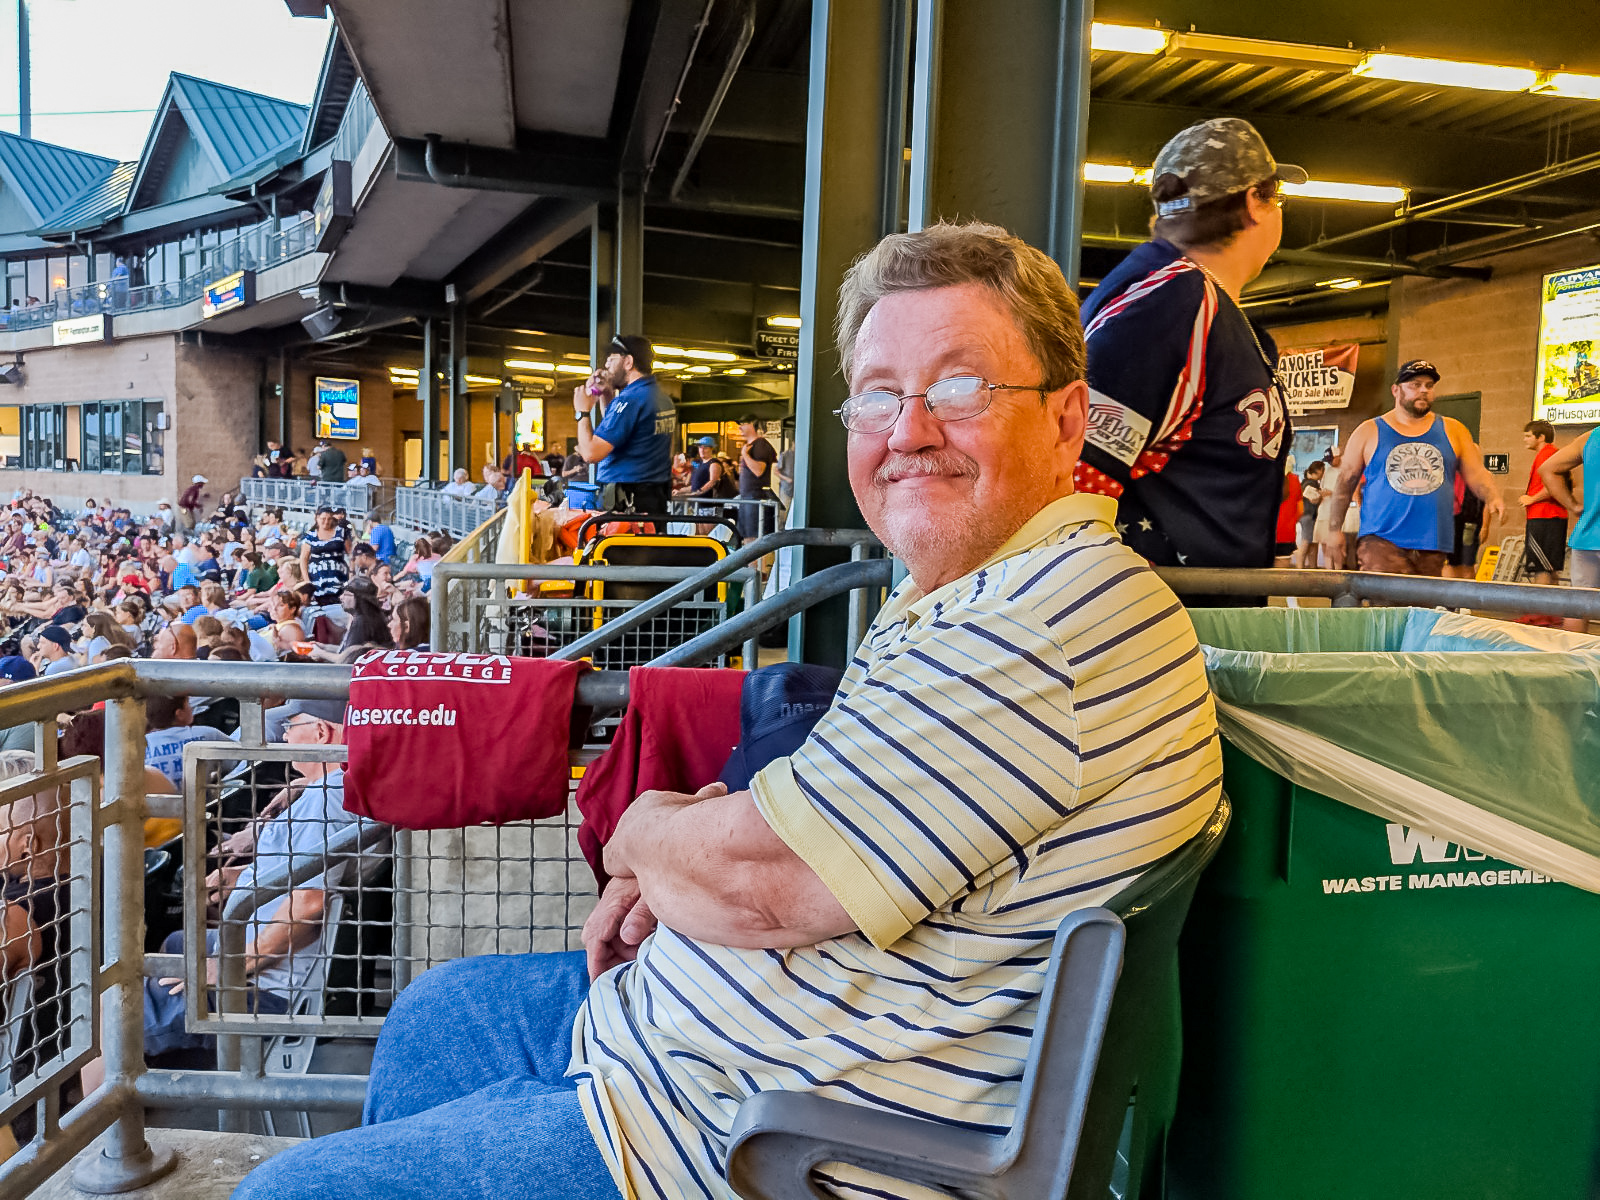 Somerset Patriots 2018-193332.jpg